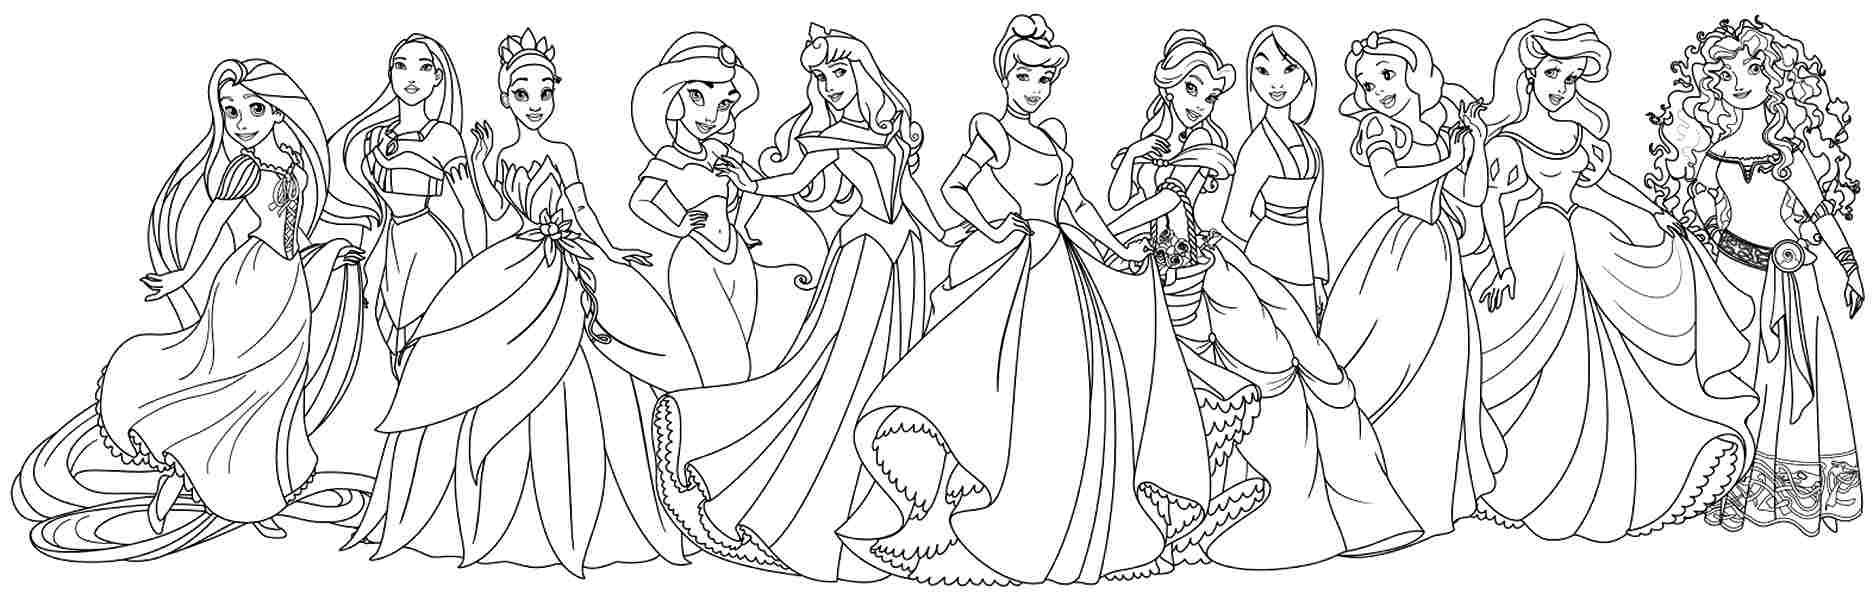 Coloring Pages For Girls 13 And Up 05 Disney Svg Files Pinterest